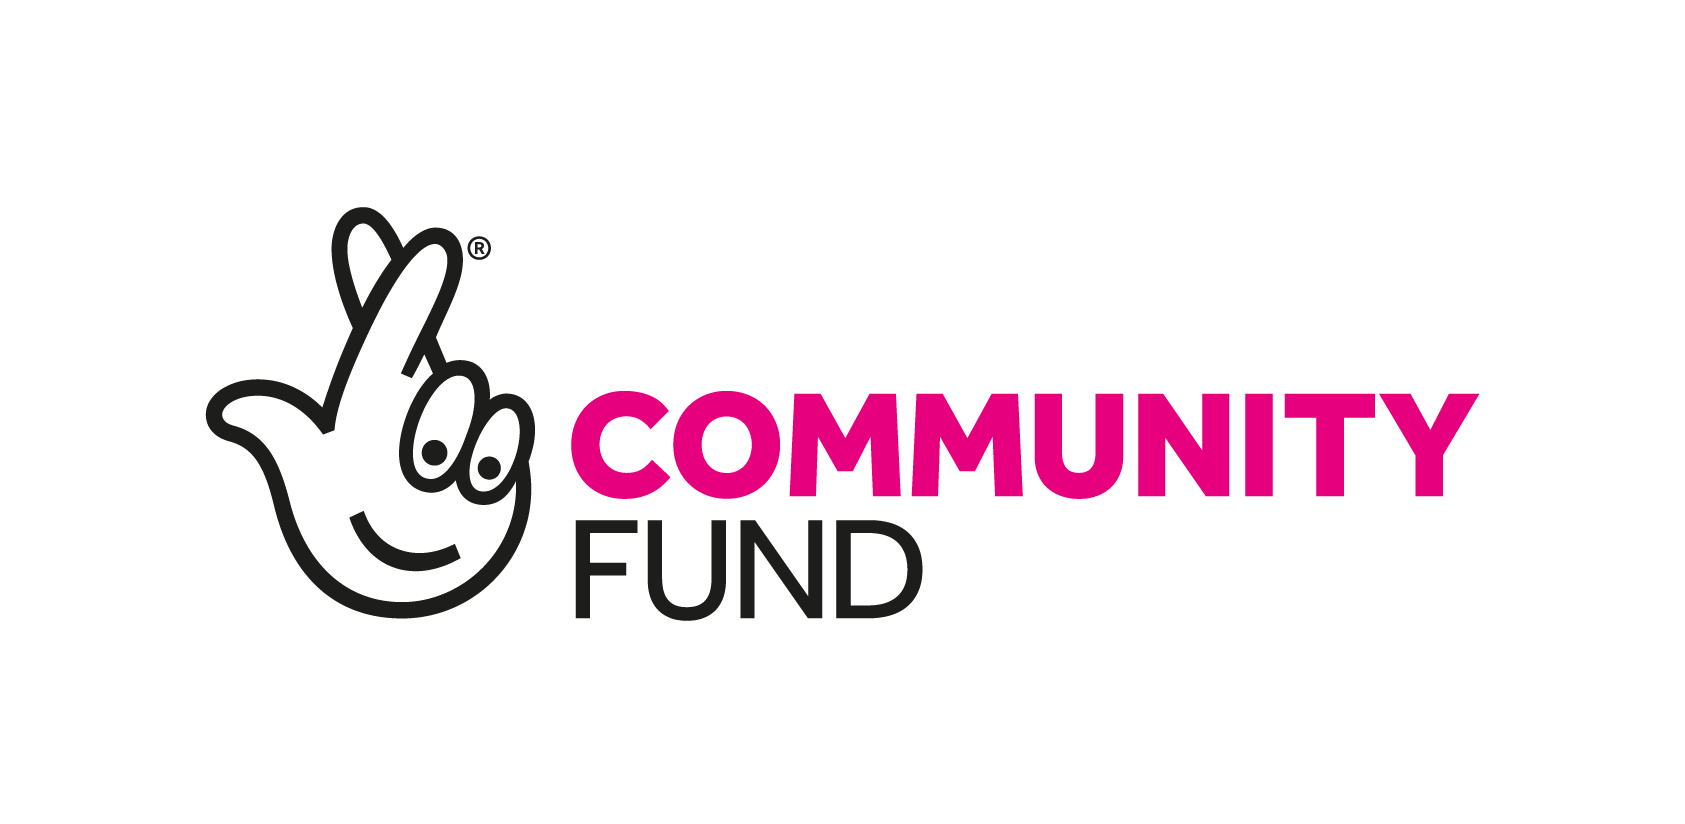 National Lottery Community Fund monolingual colour logo